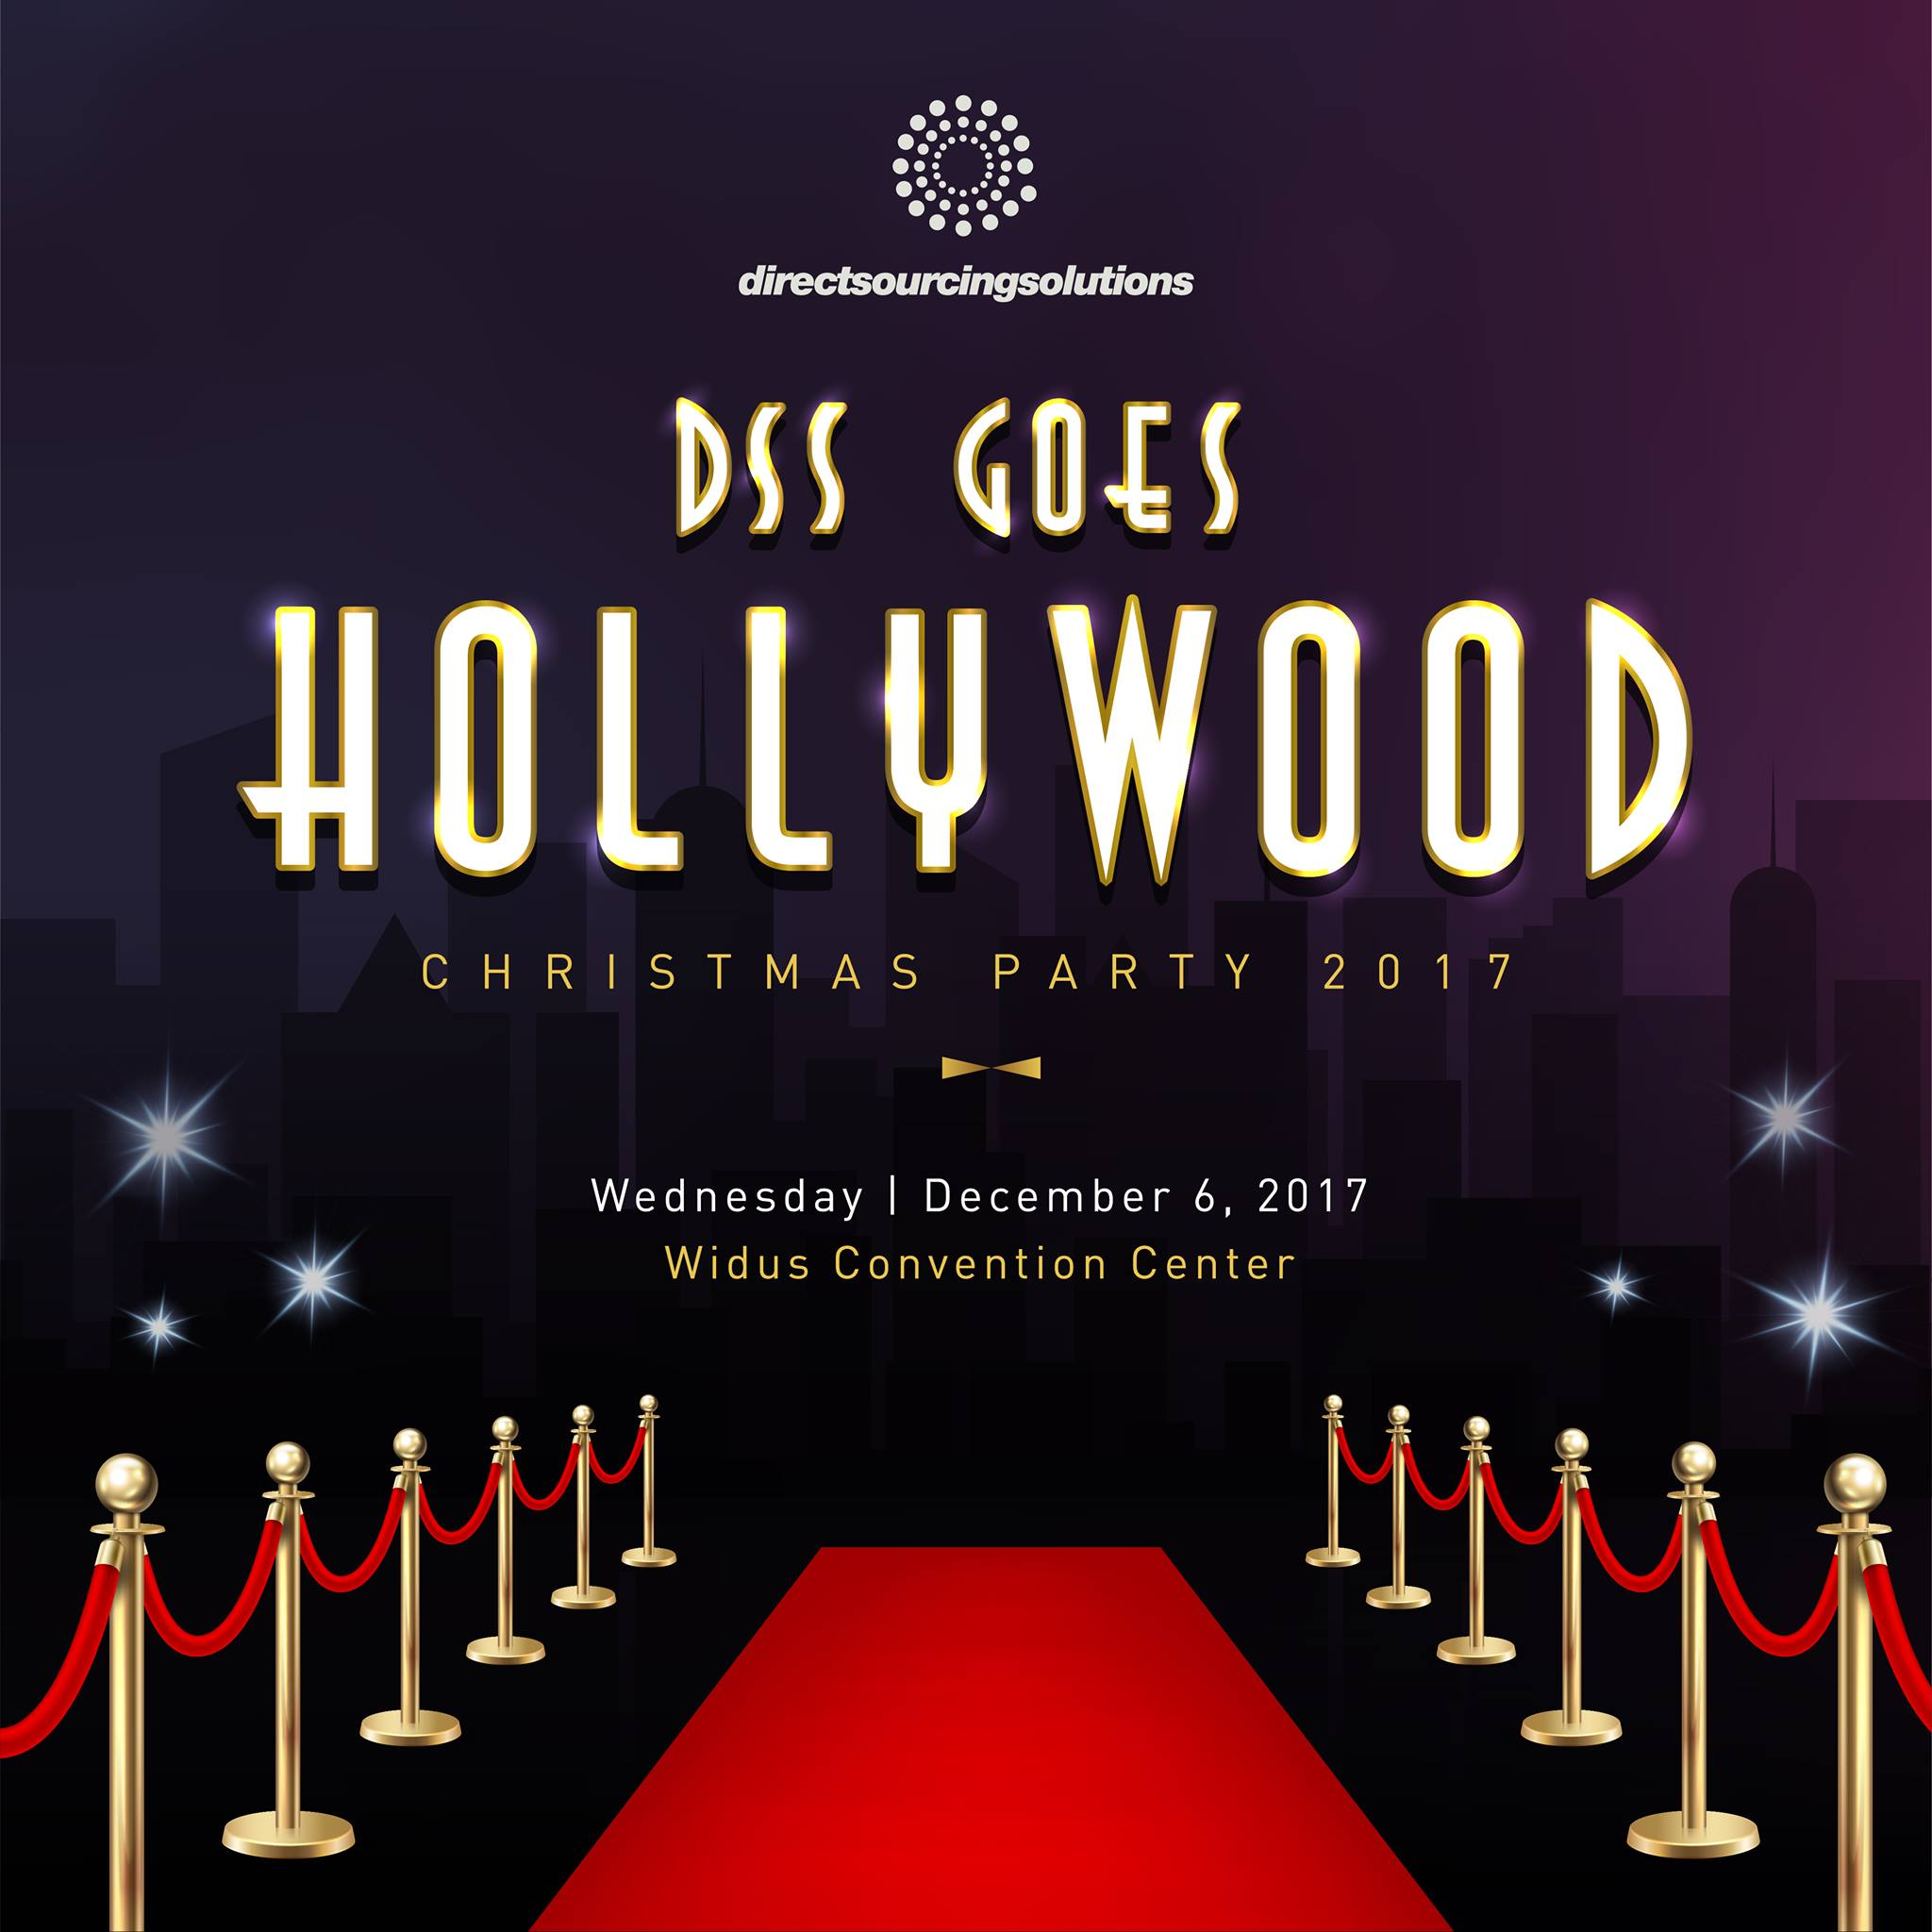 DSS goes Hollywood